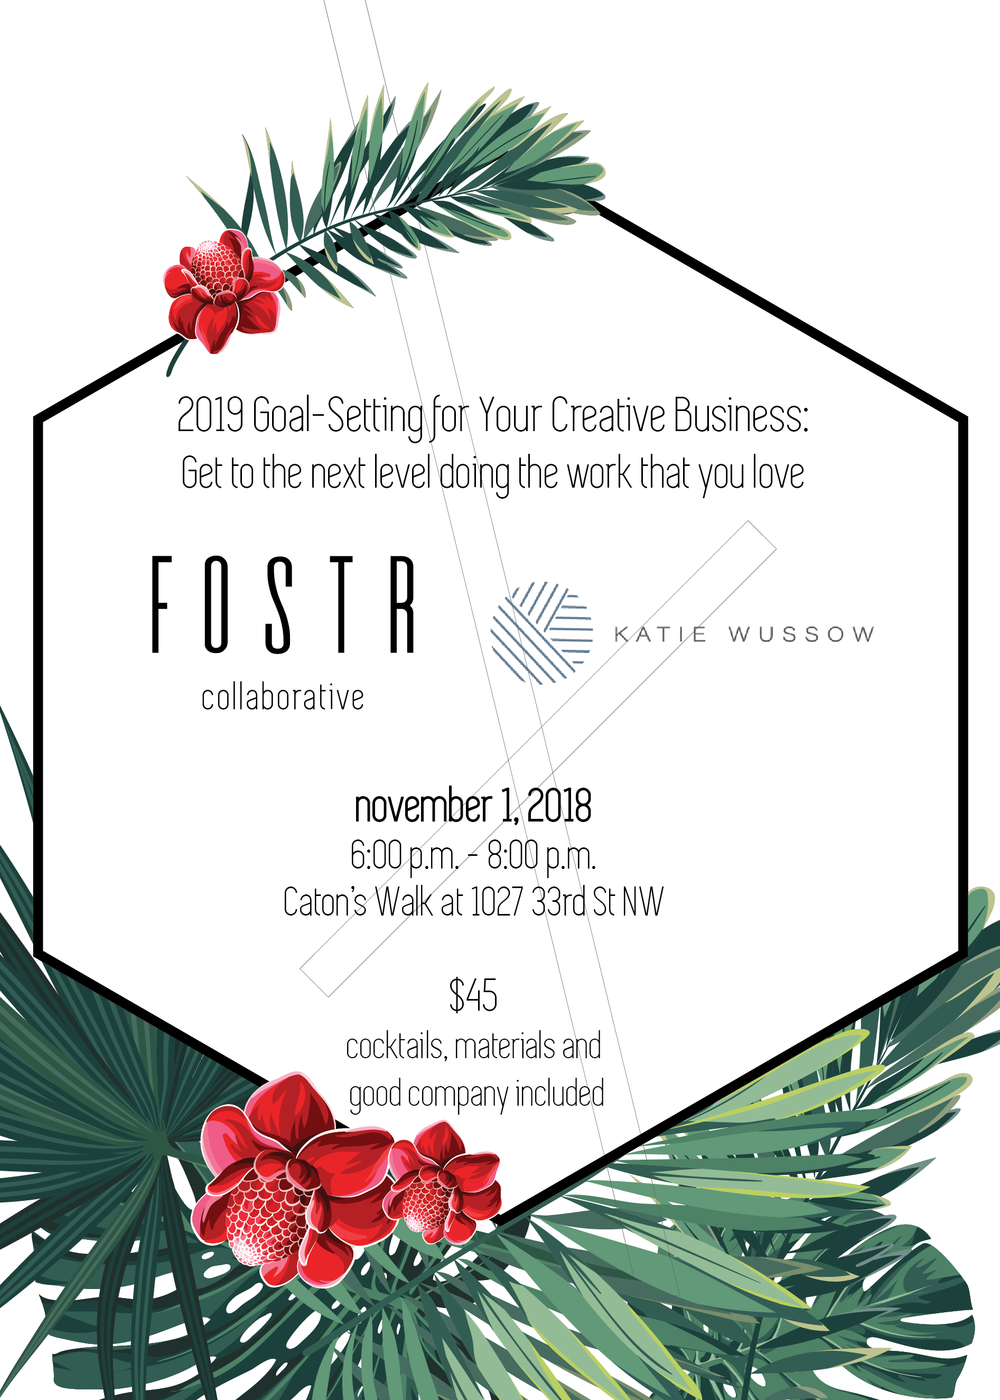 fostr_workshop_graphics_kate_20181101-01.png